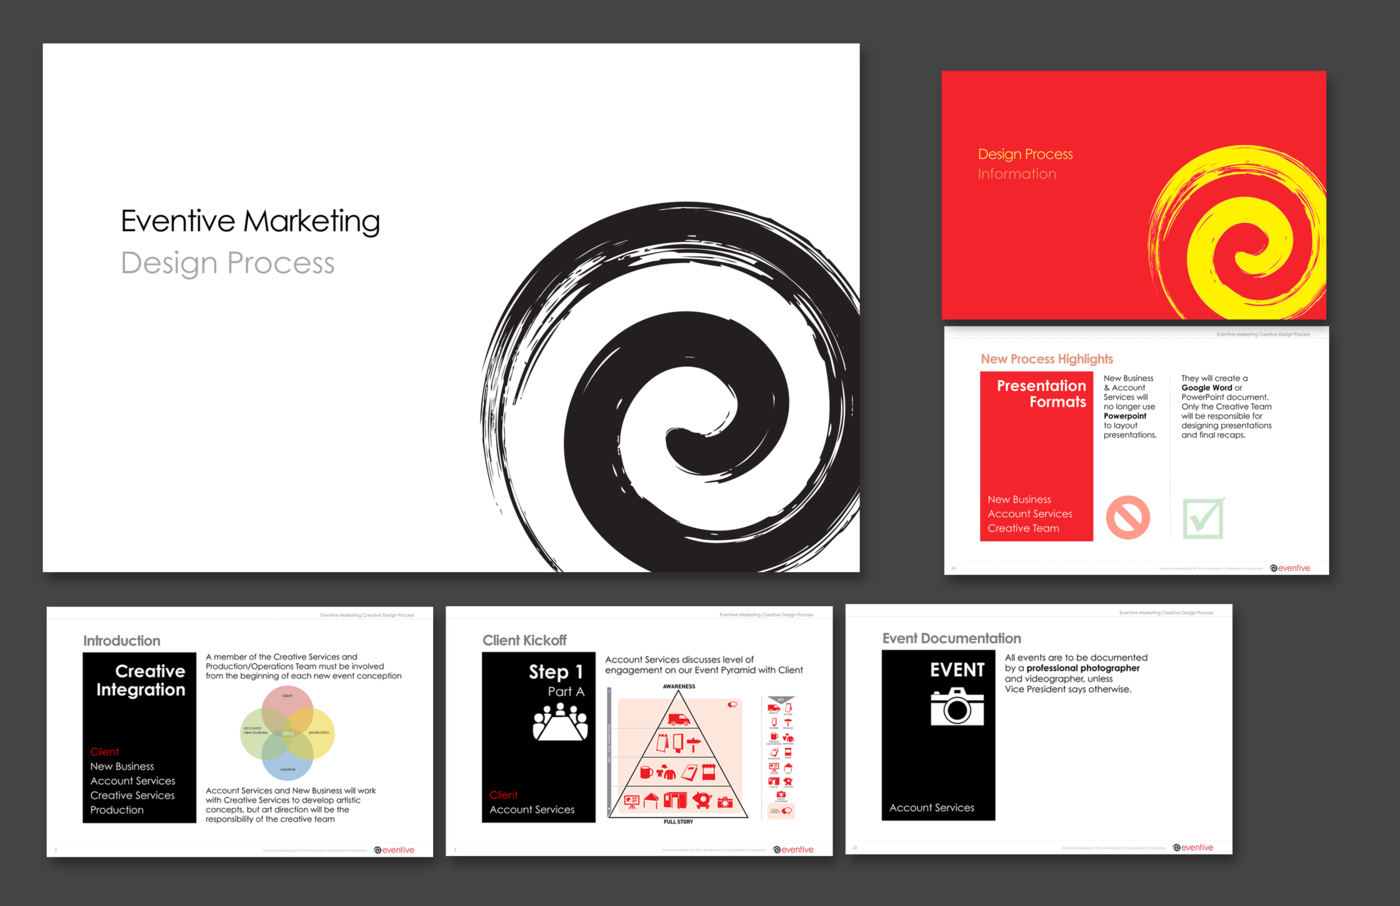 Including 26 Pg Perfect Bound Capabilities Brochure Revised Logo Case Studies Website Creative Design Workflow Presentation Corporate Collateral